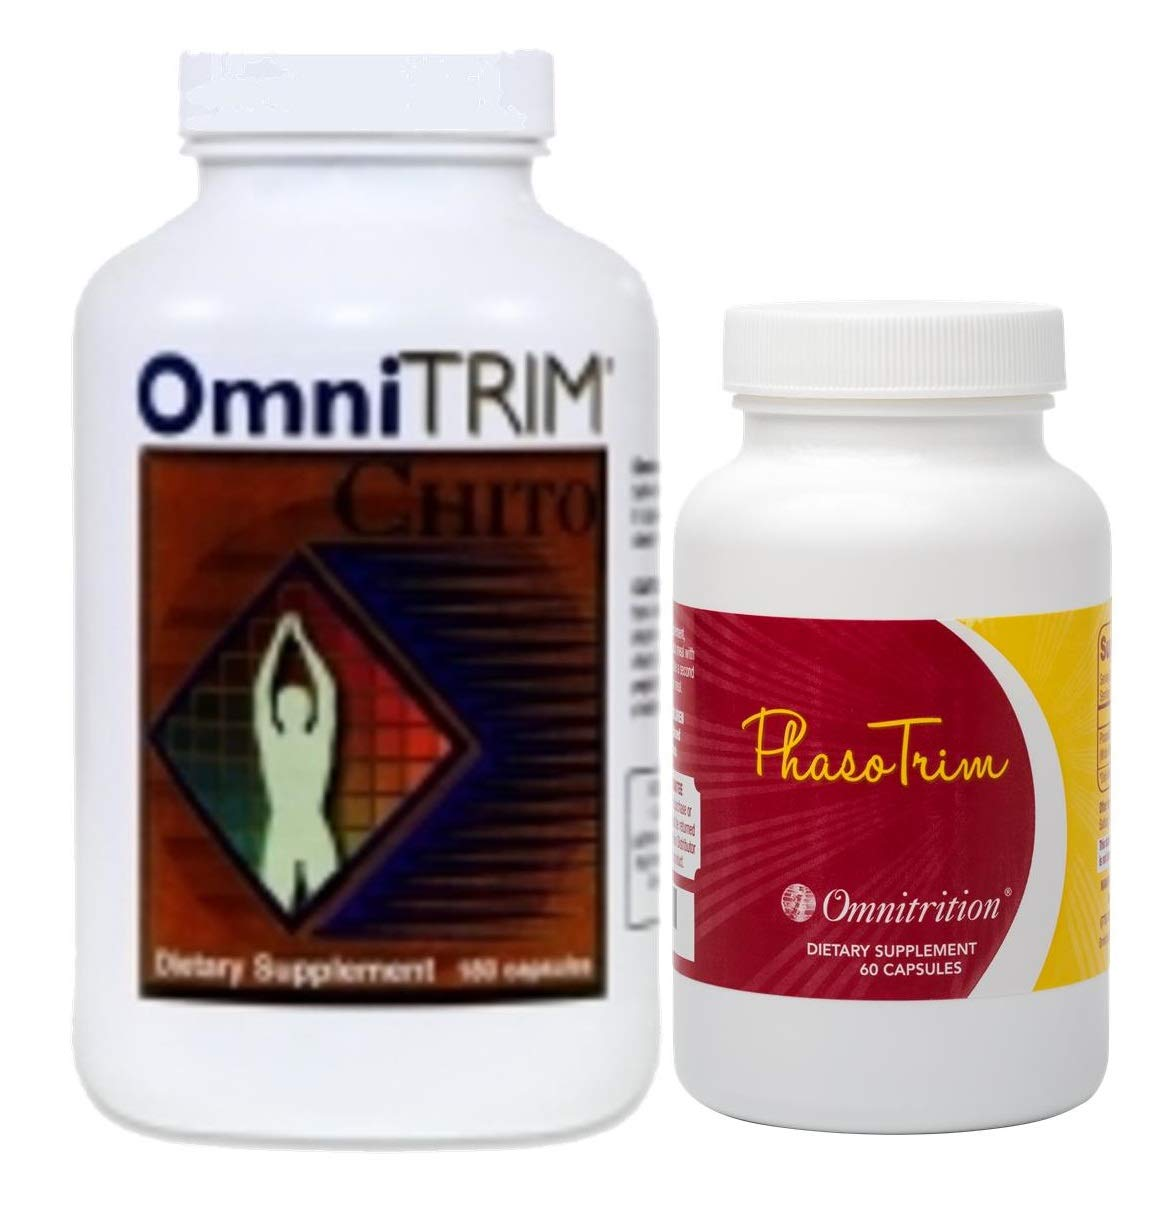 Omnitrition Bundle of 2 Products - the ''Fun Couple'' Includes OmniTrim Chito (180 Capsules) and OmniTrim PhasoTrim (60 Capsules) by Omnitrition